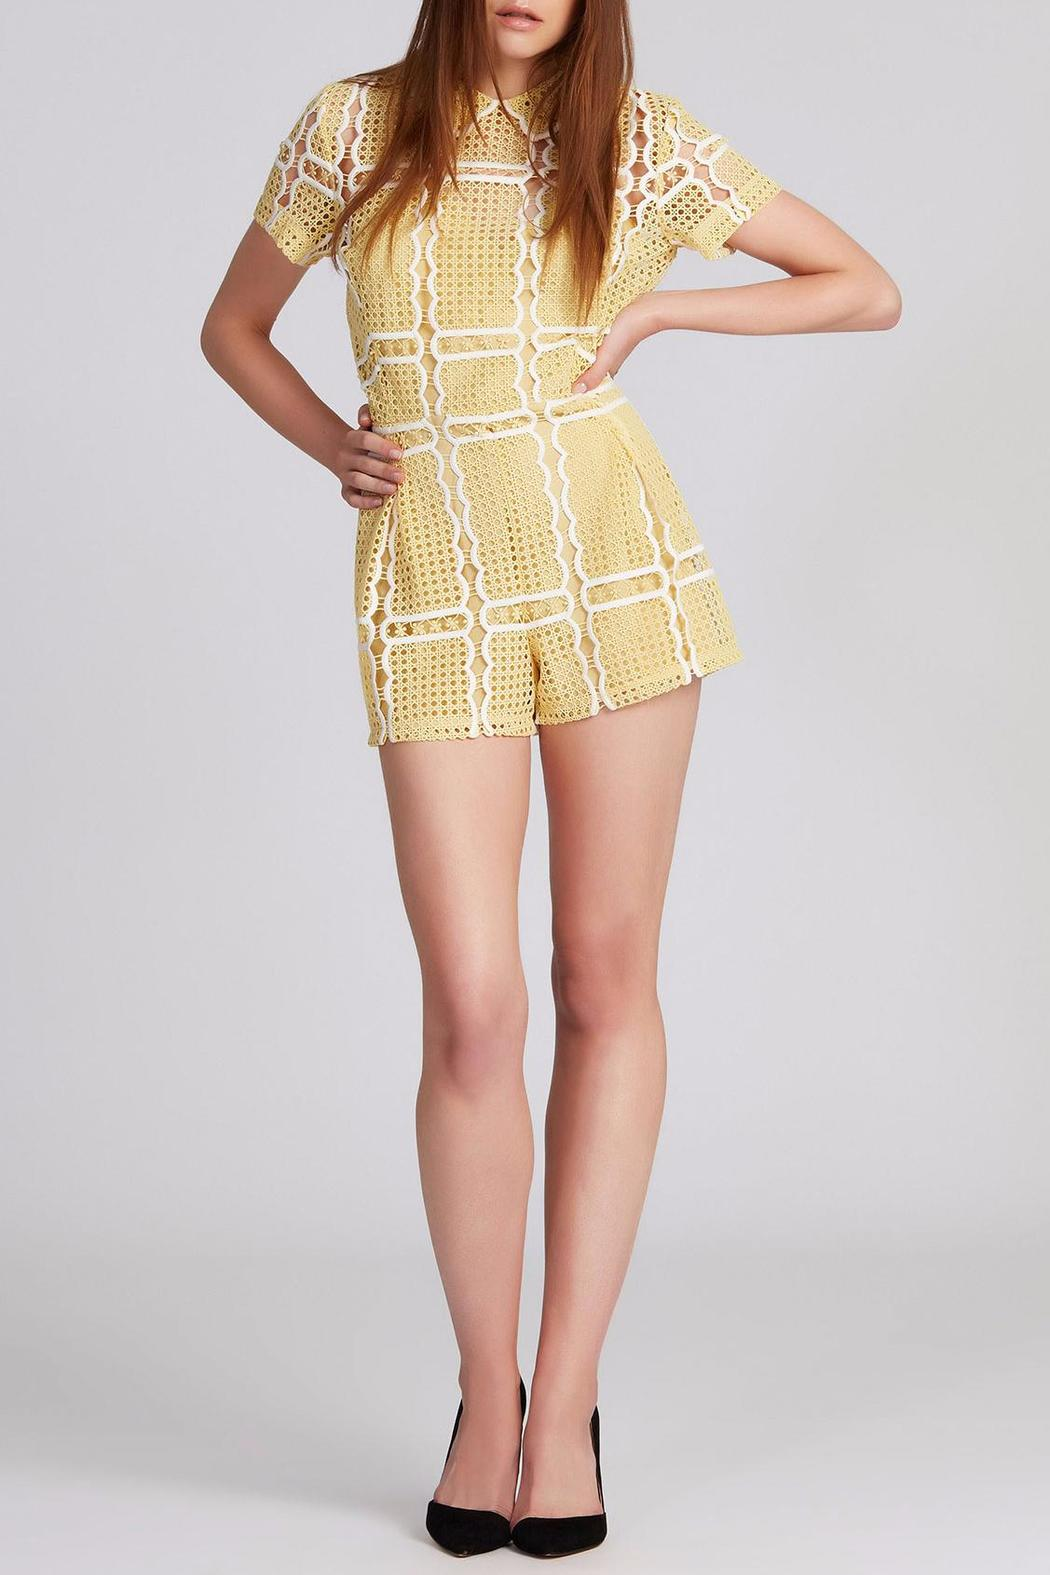 13674a3ab9 Alice McCall Stolen Dance Playsuit from Queensland by Soho Girl ...